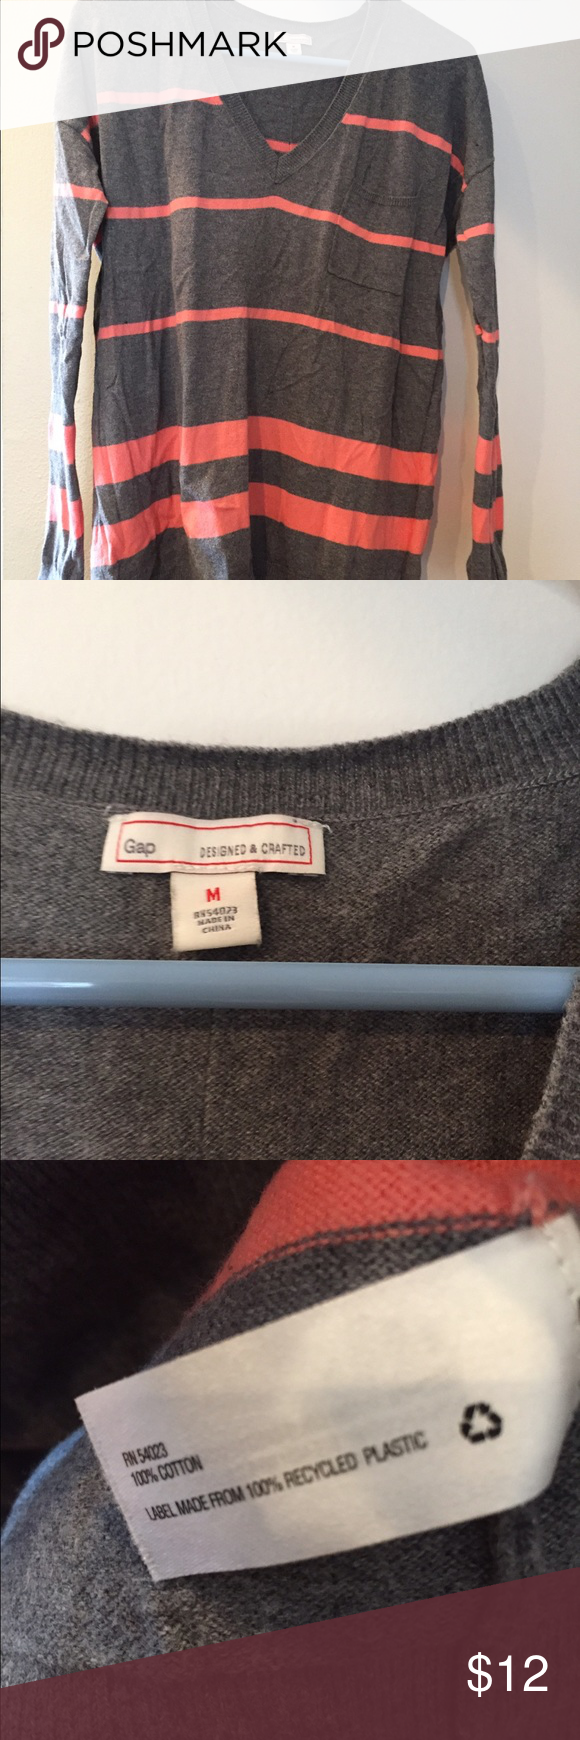 Gap V-Neck Striped Sweater This grey and coral striped sweater is in good used condition without any holes or stains. Very lightweight and comfortable! GAP Sweaters V-Necks